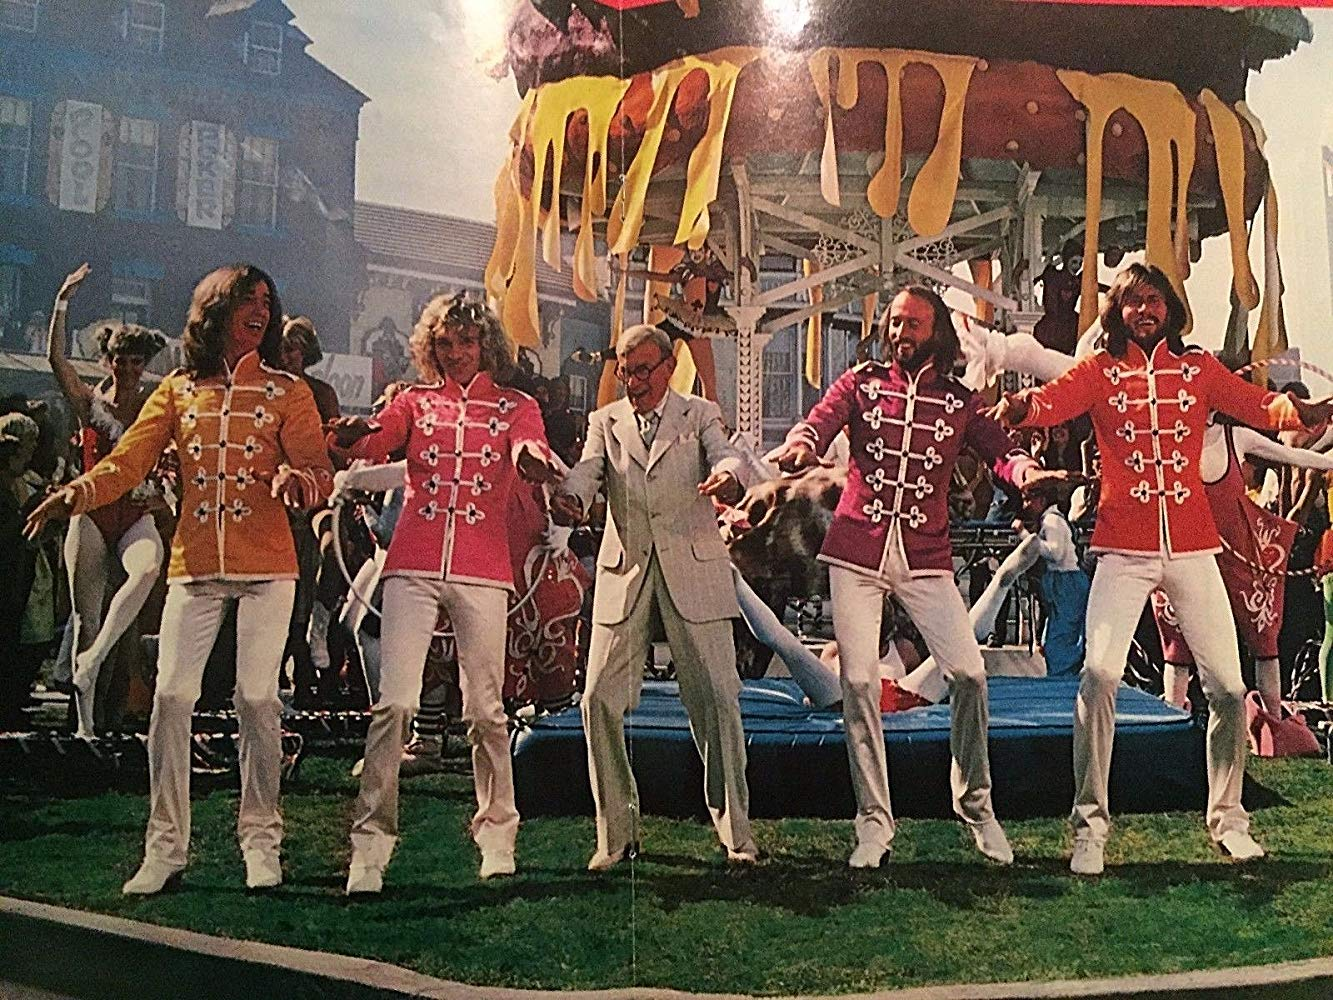 The Bees Gees and Peter Frampton dance with George Burns in Sgt Peppers Lonely Hearts Club Band (1978)